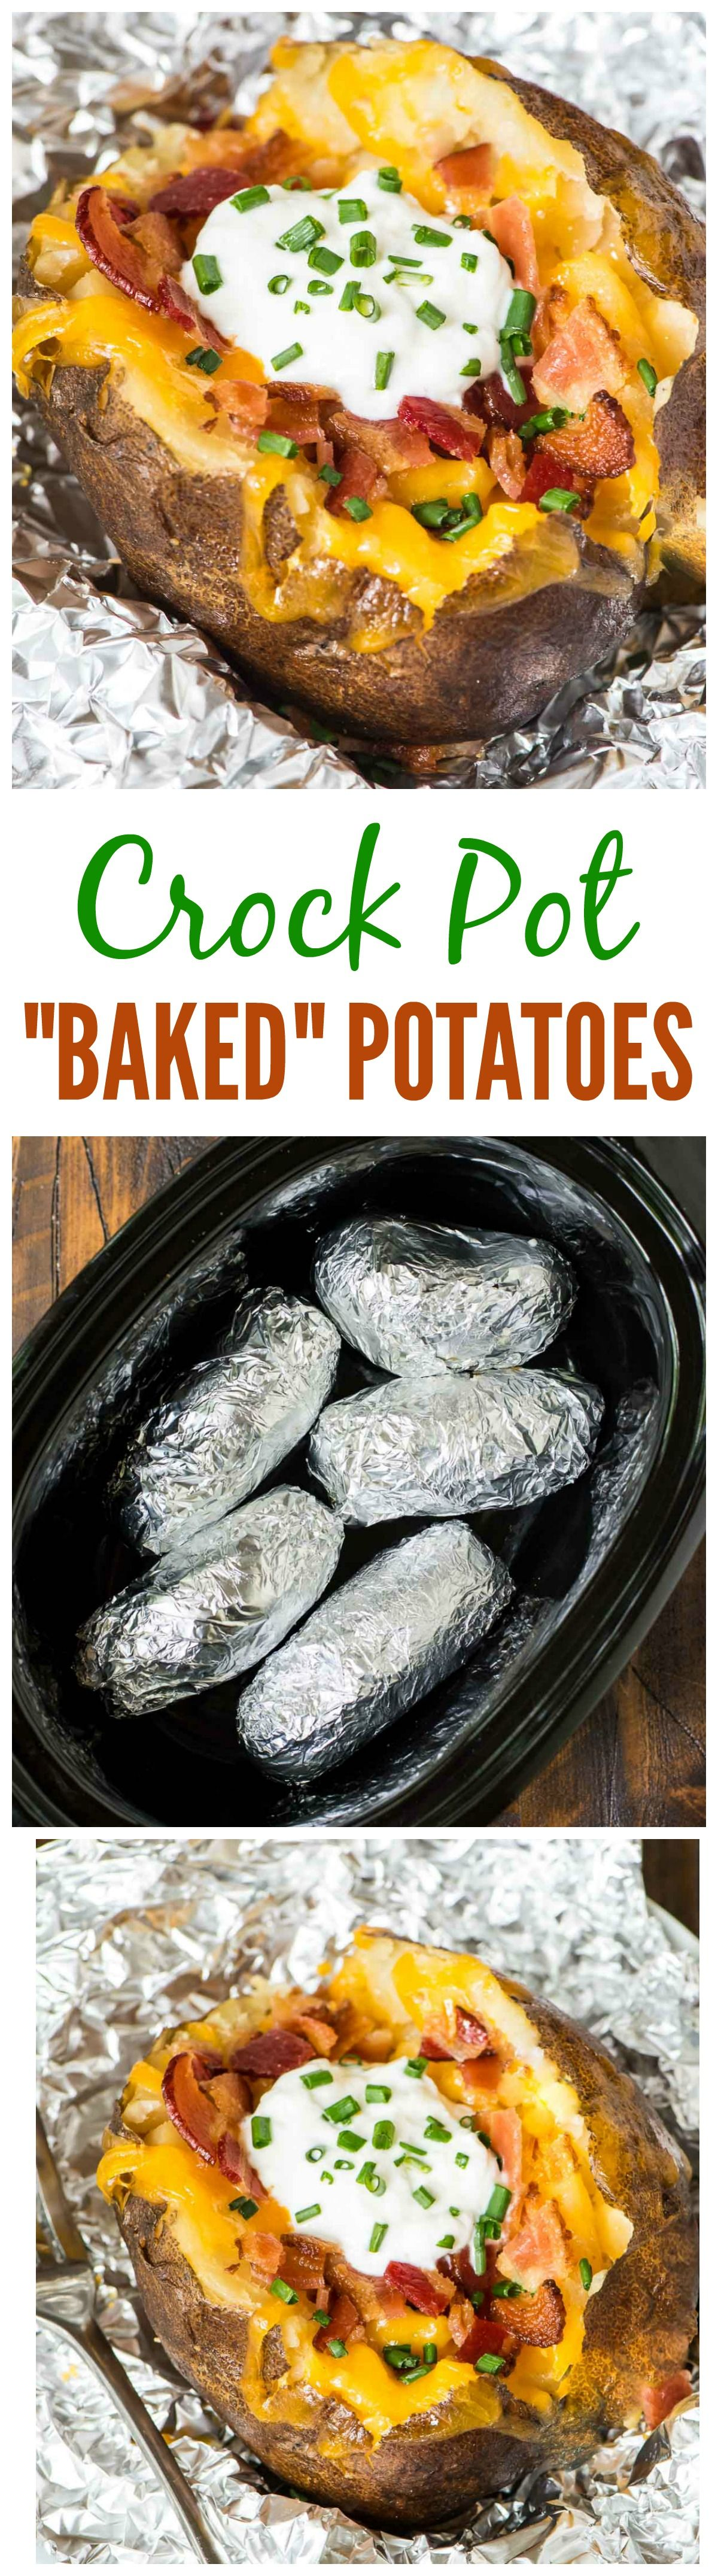 Crock Pot Baked Potatoes recipe — the easiest way to